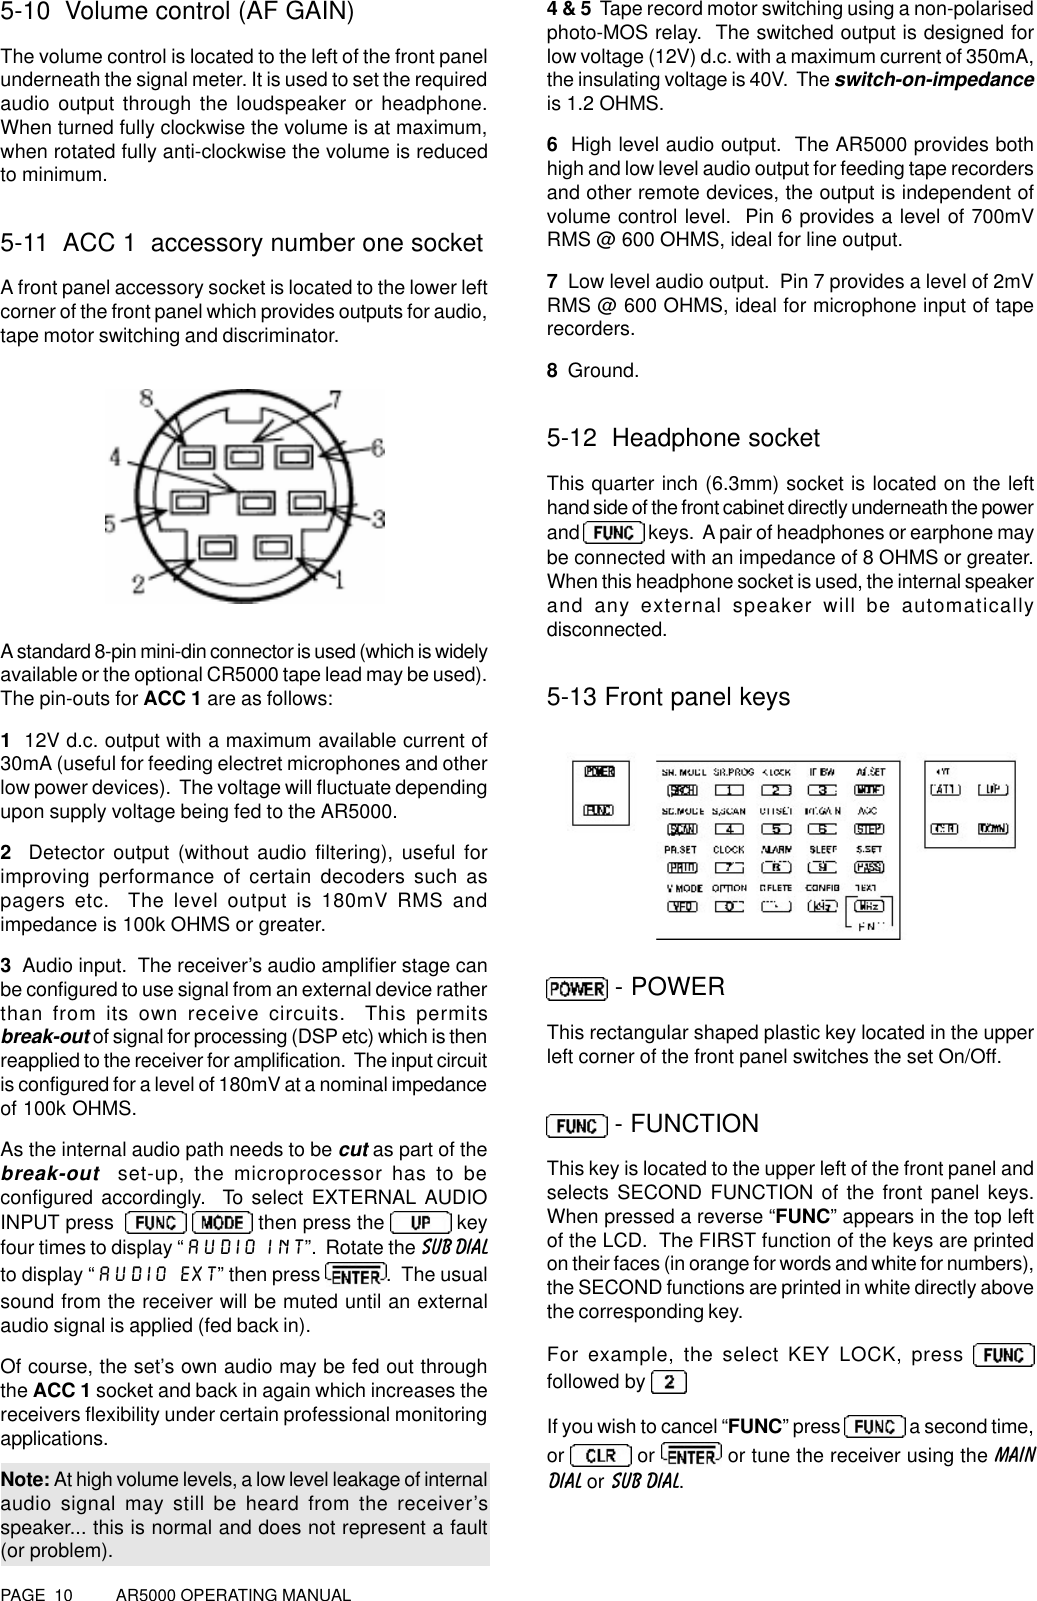 Aor Usa Ar5000a 3b Communications Receiver User Manual 5000m Electret Mic Preamp Circuit Page 10 Ar5000 Operating Manual5 Volume Control Af Gainthe